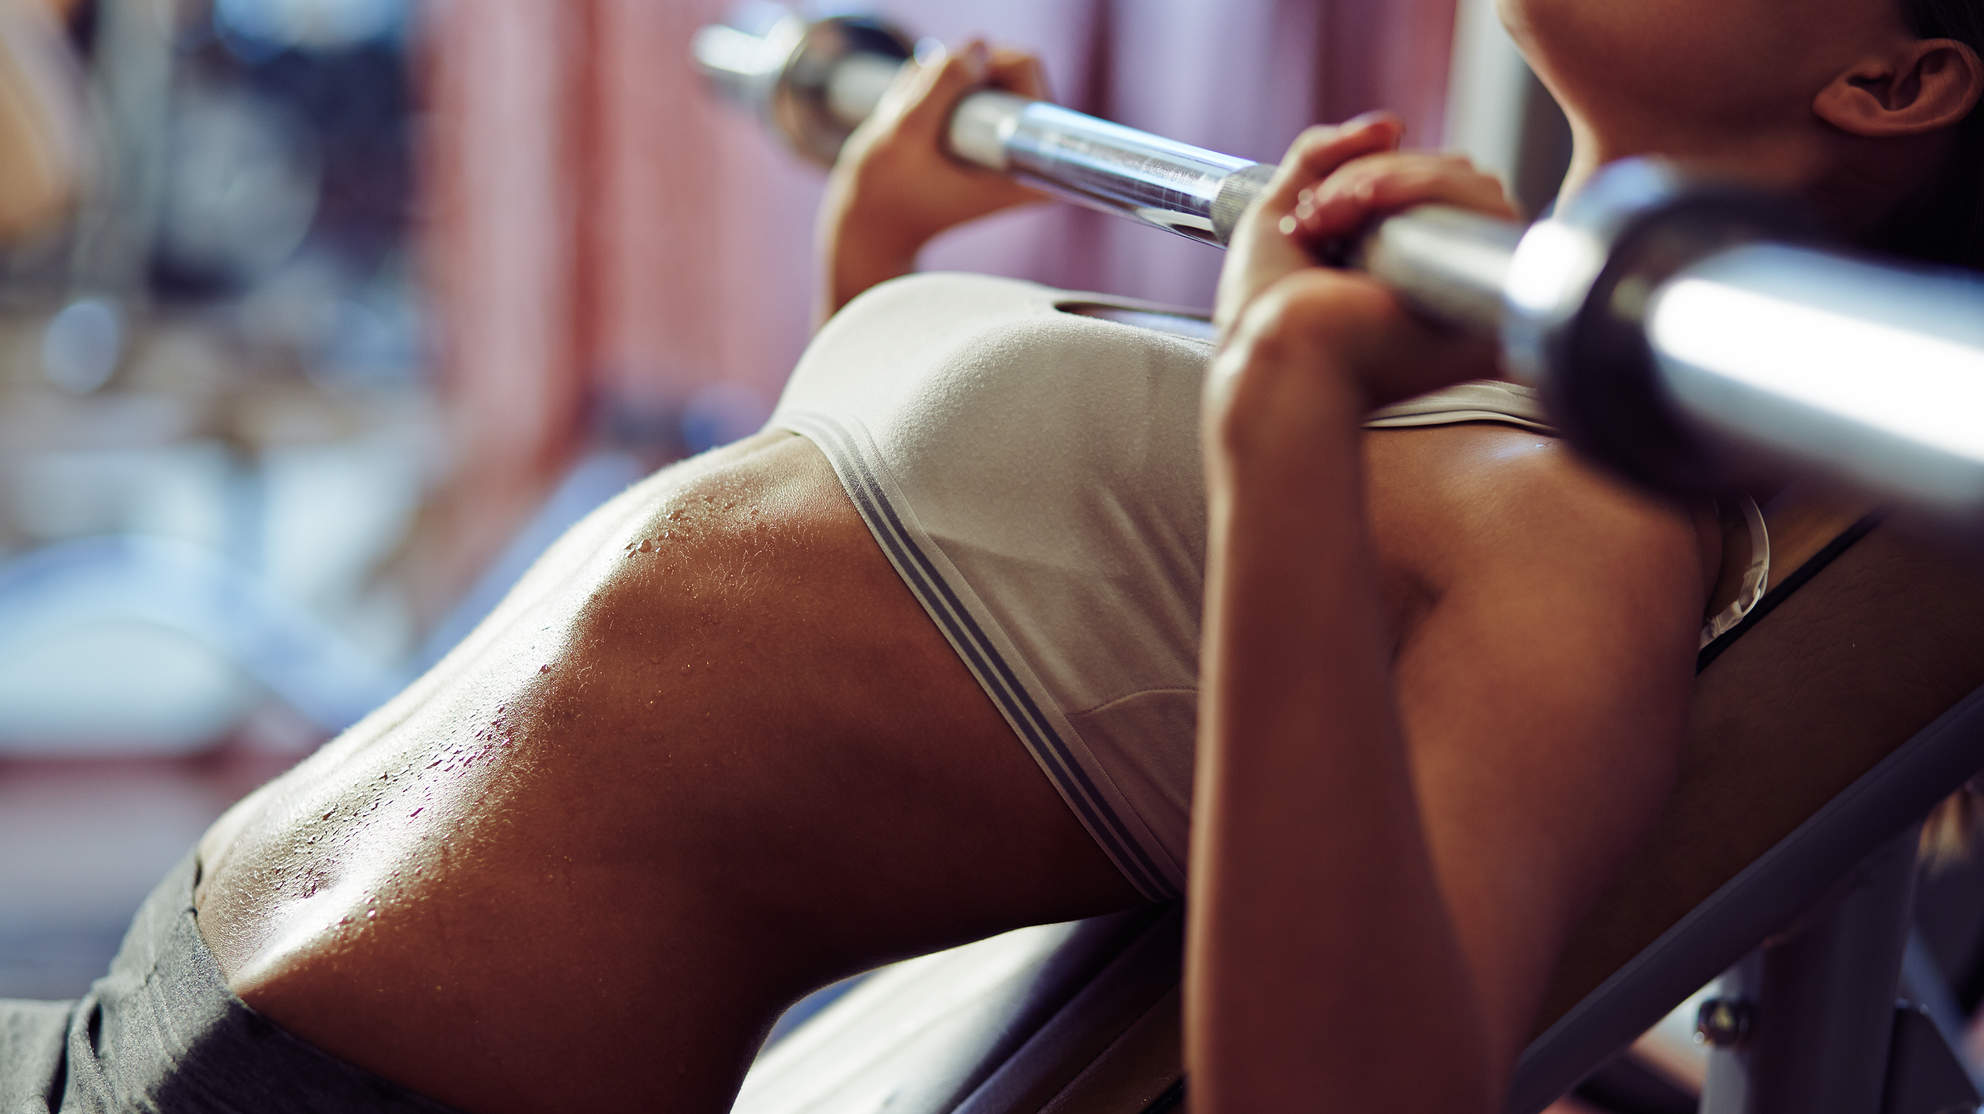 Sex after exercise testosterone